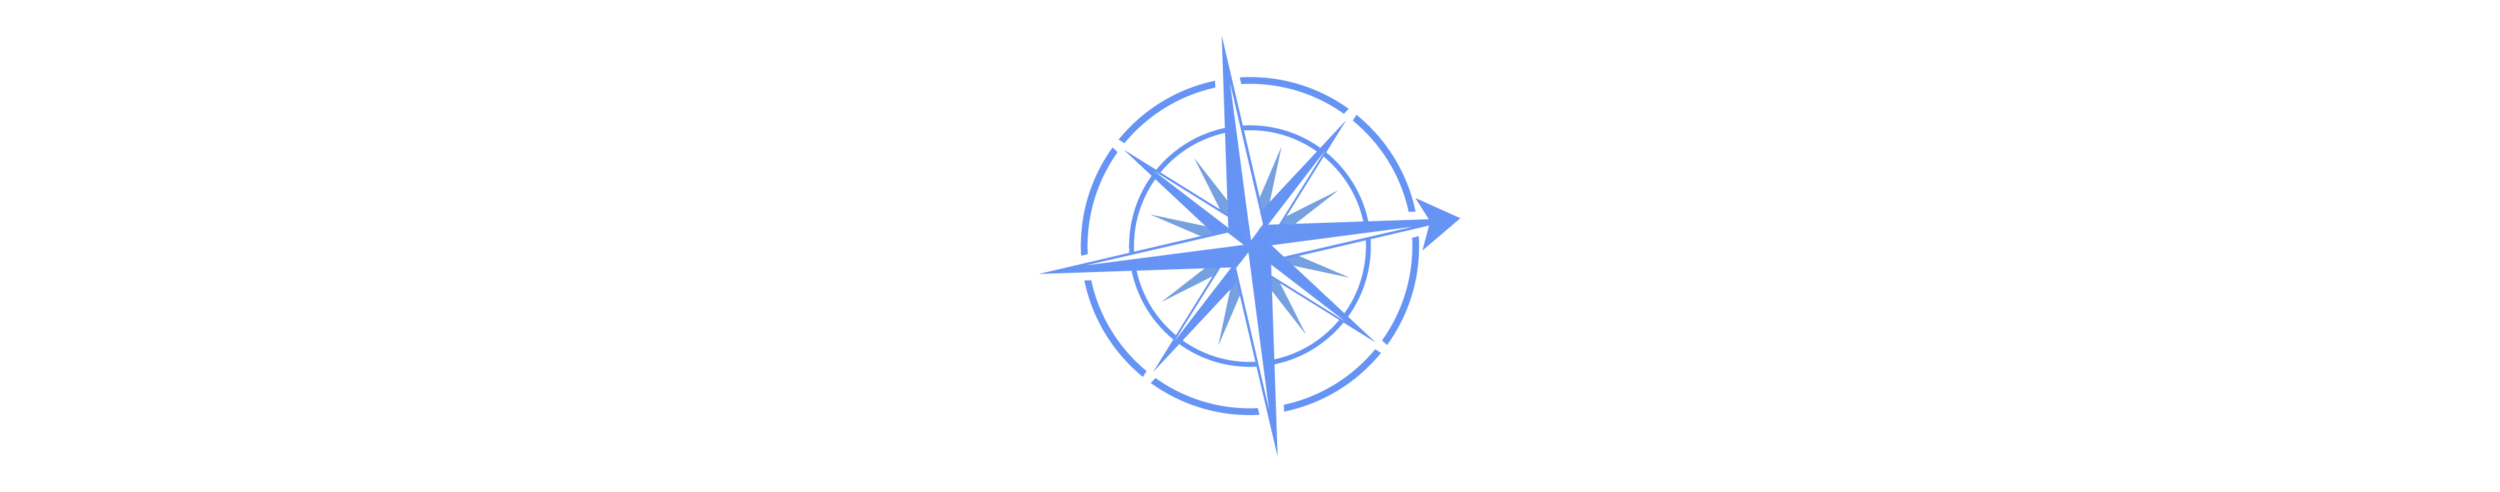 divider-compass-01.png